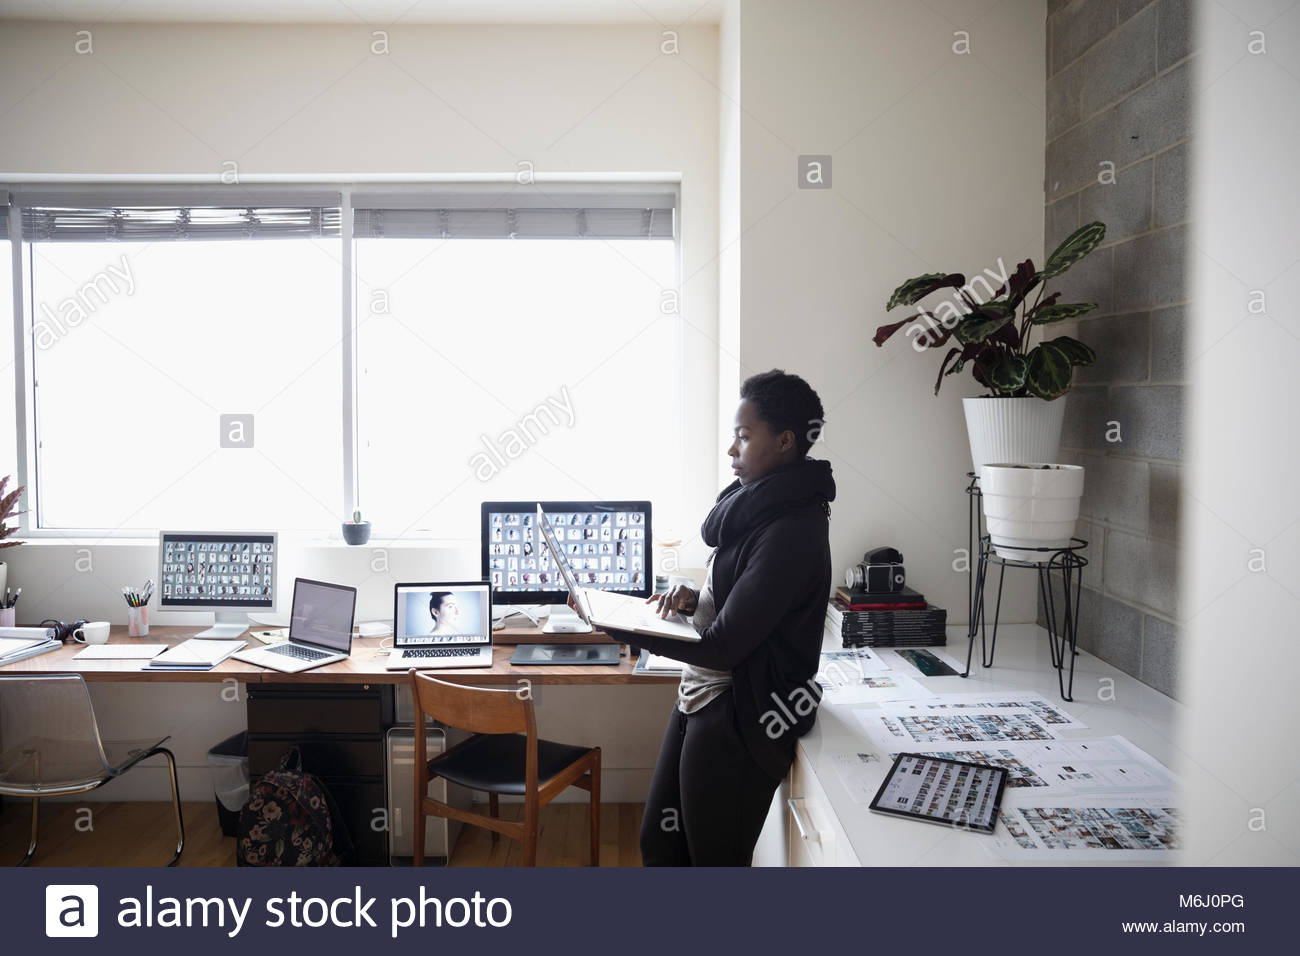 Female photo editor using laptop in office - Stock Image